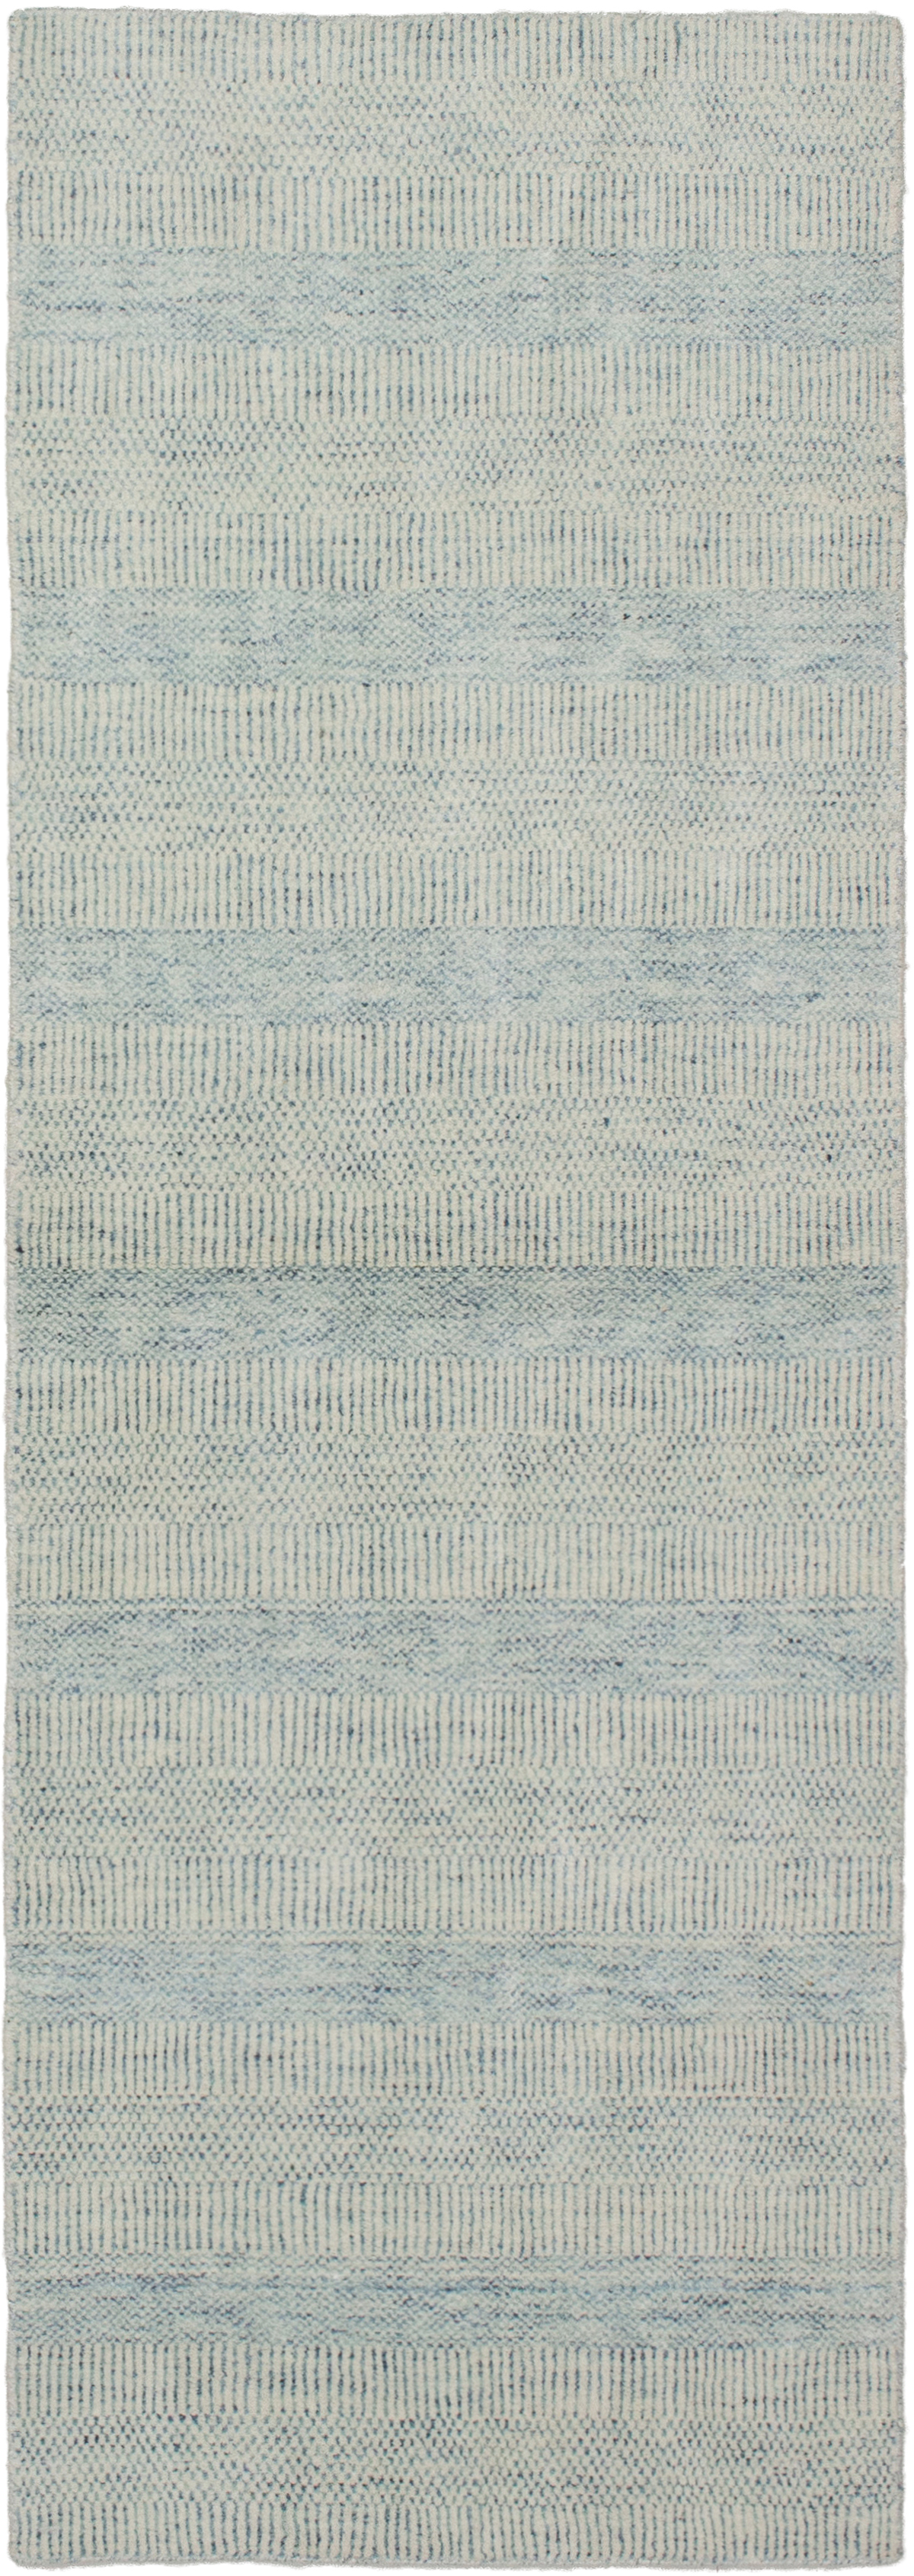 """Hand-knotted Pearl Cream, Light Blue   Rug 2'7"""" x 8'2"""" Size: 2'7"""" x 8'2"""""""